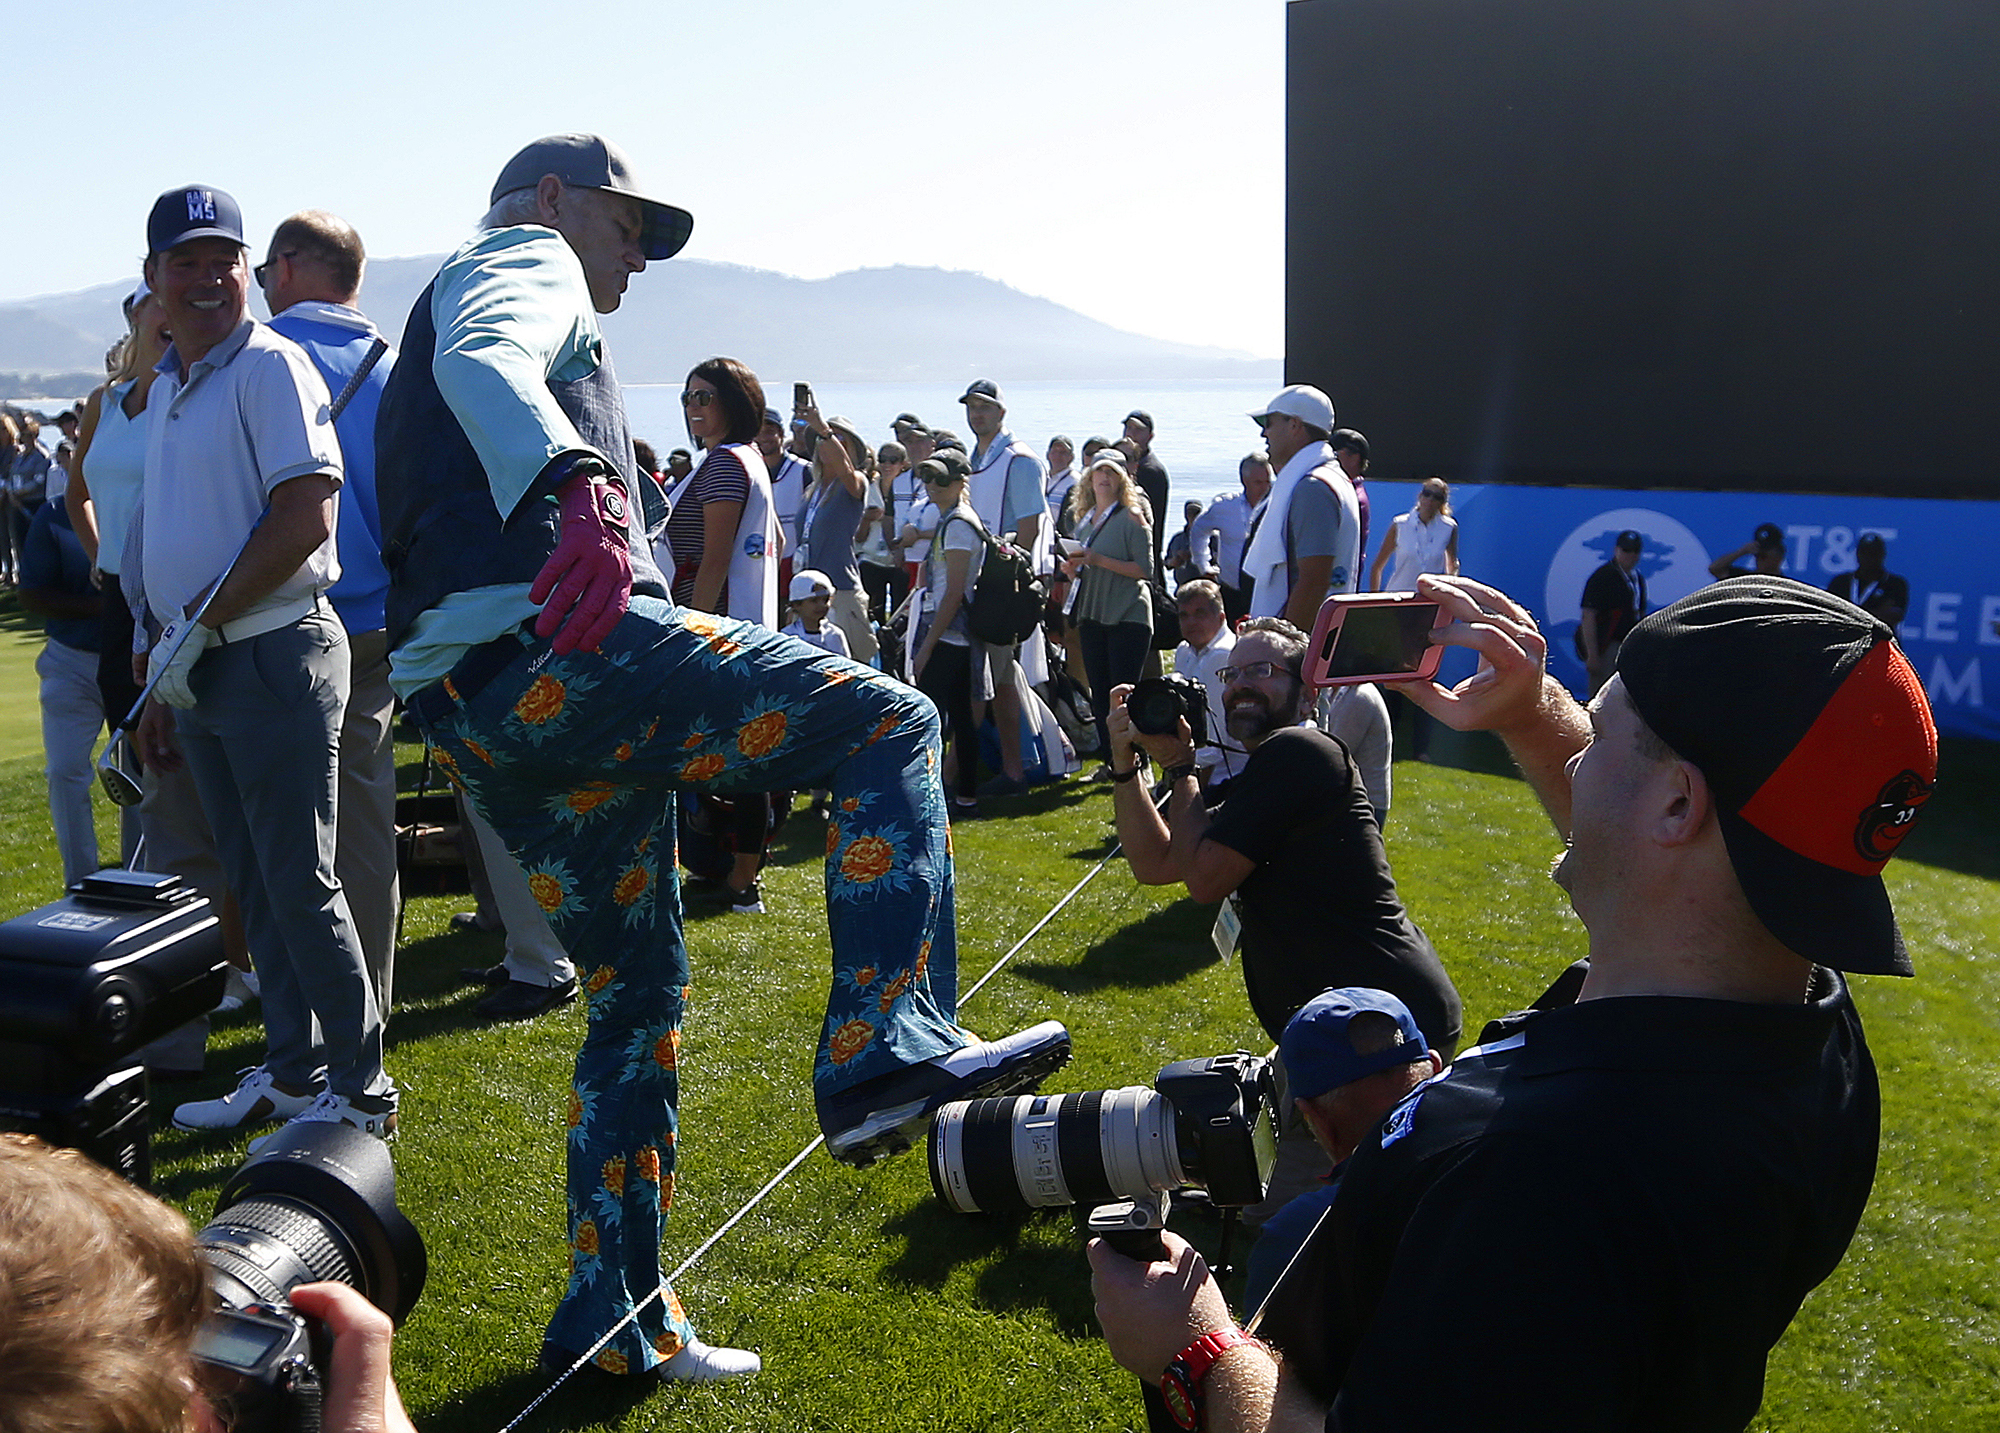 Day and Scott chase ranking rise at Pebble Beach